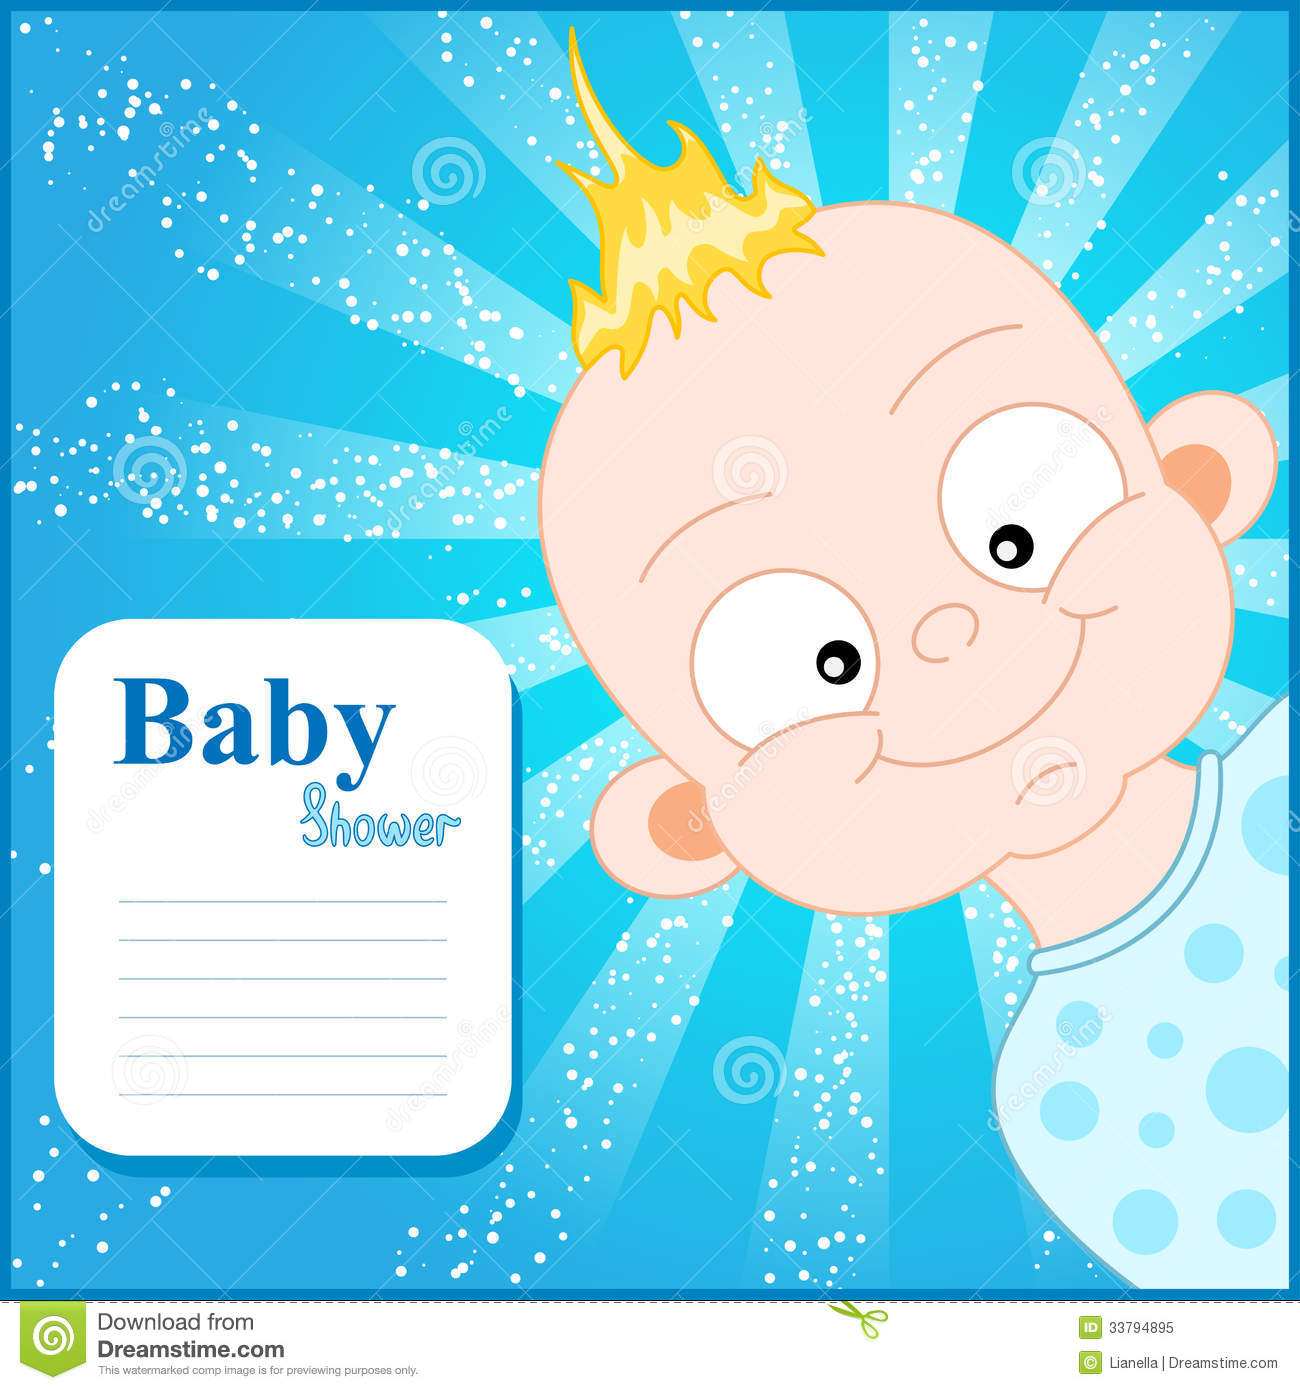 Cute Baby Shower Invitation Template Stock Illustration ...